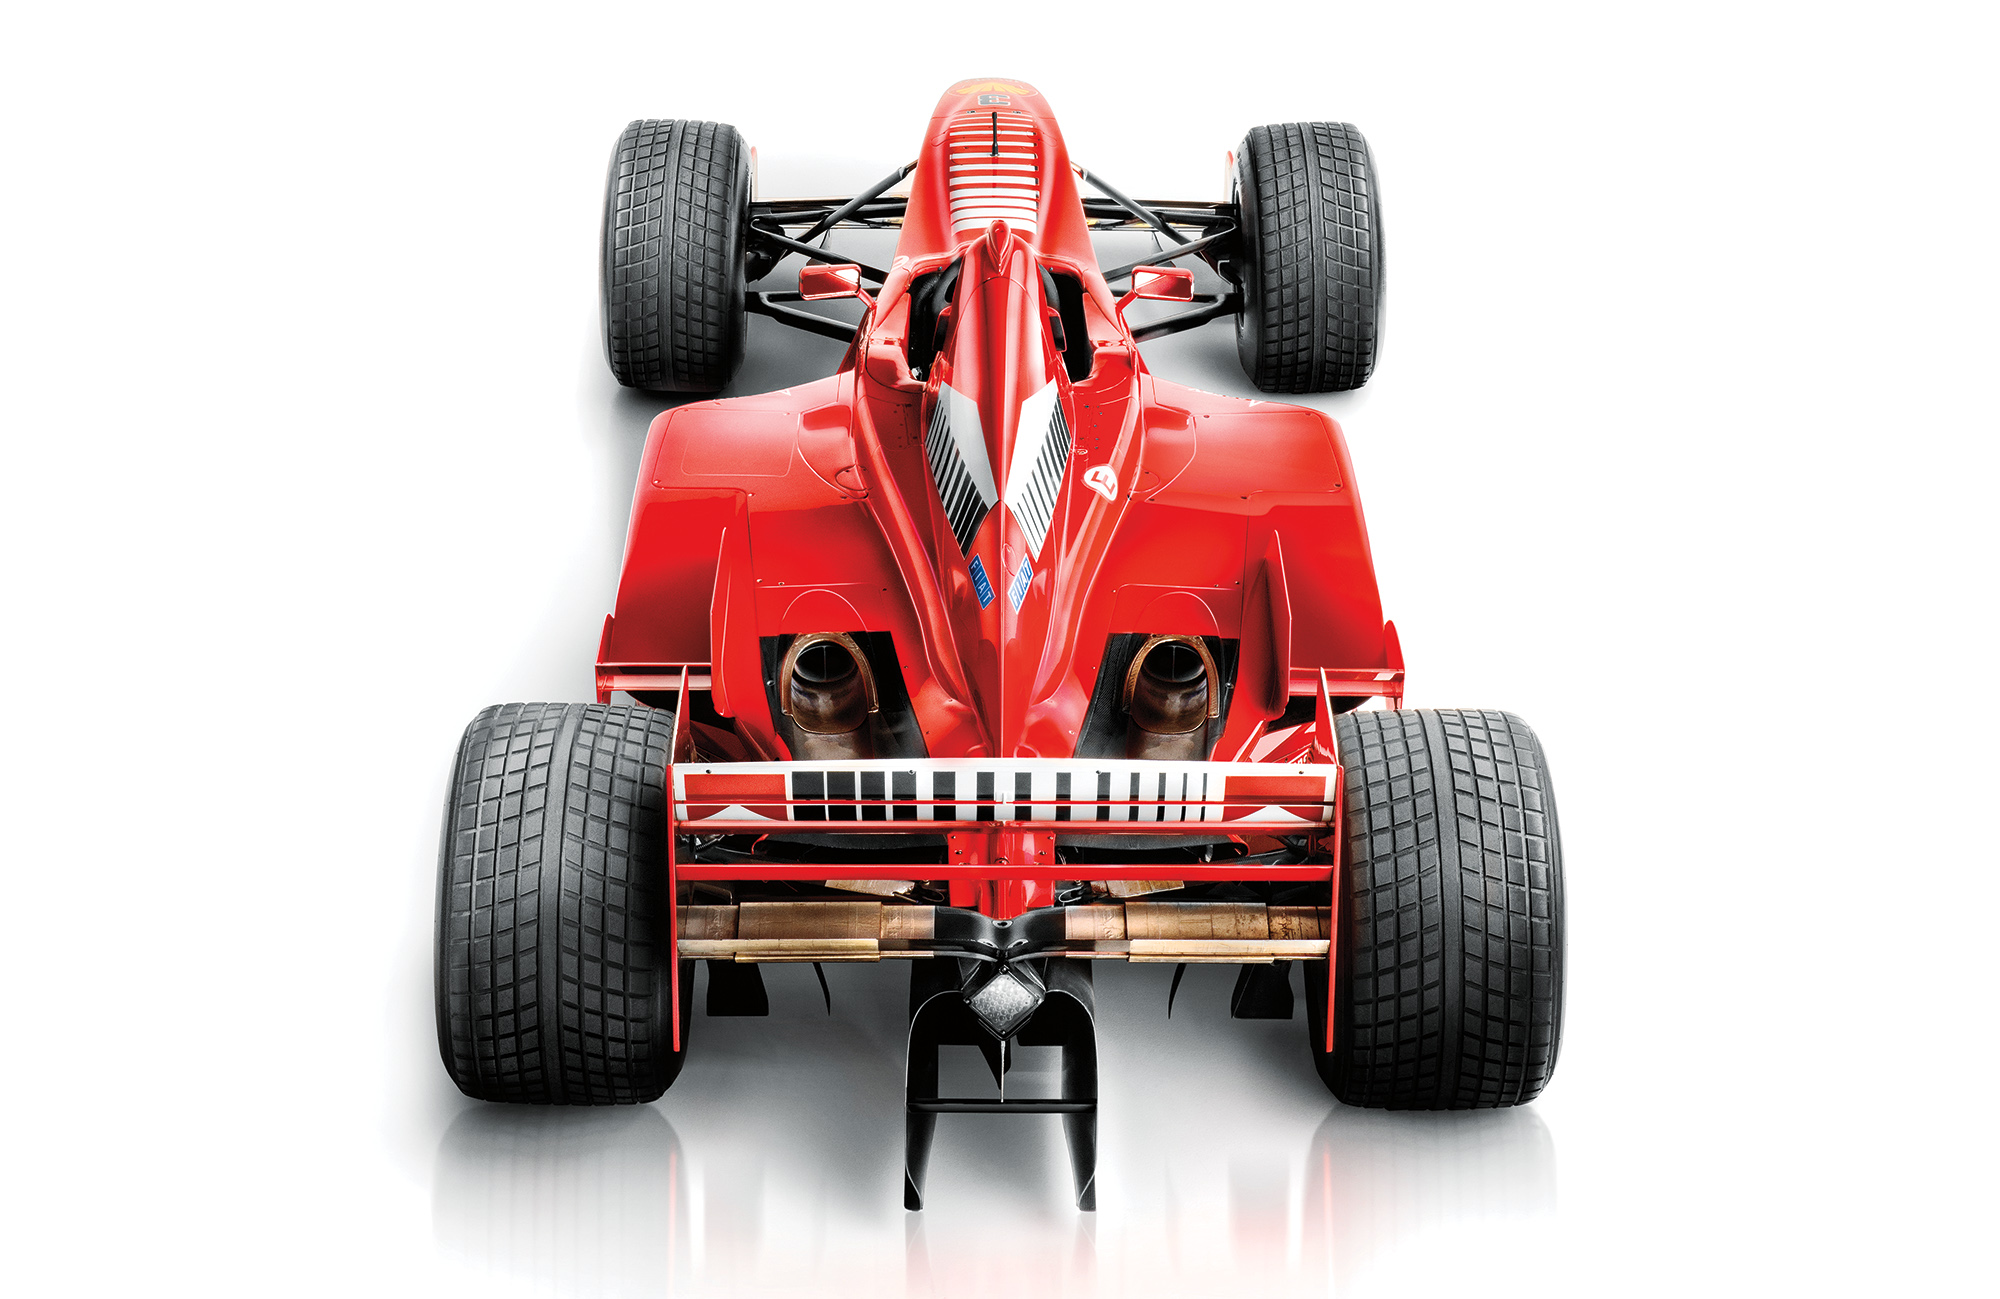 Ferrari Formula 1 photographed by Advertising Automotive